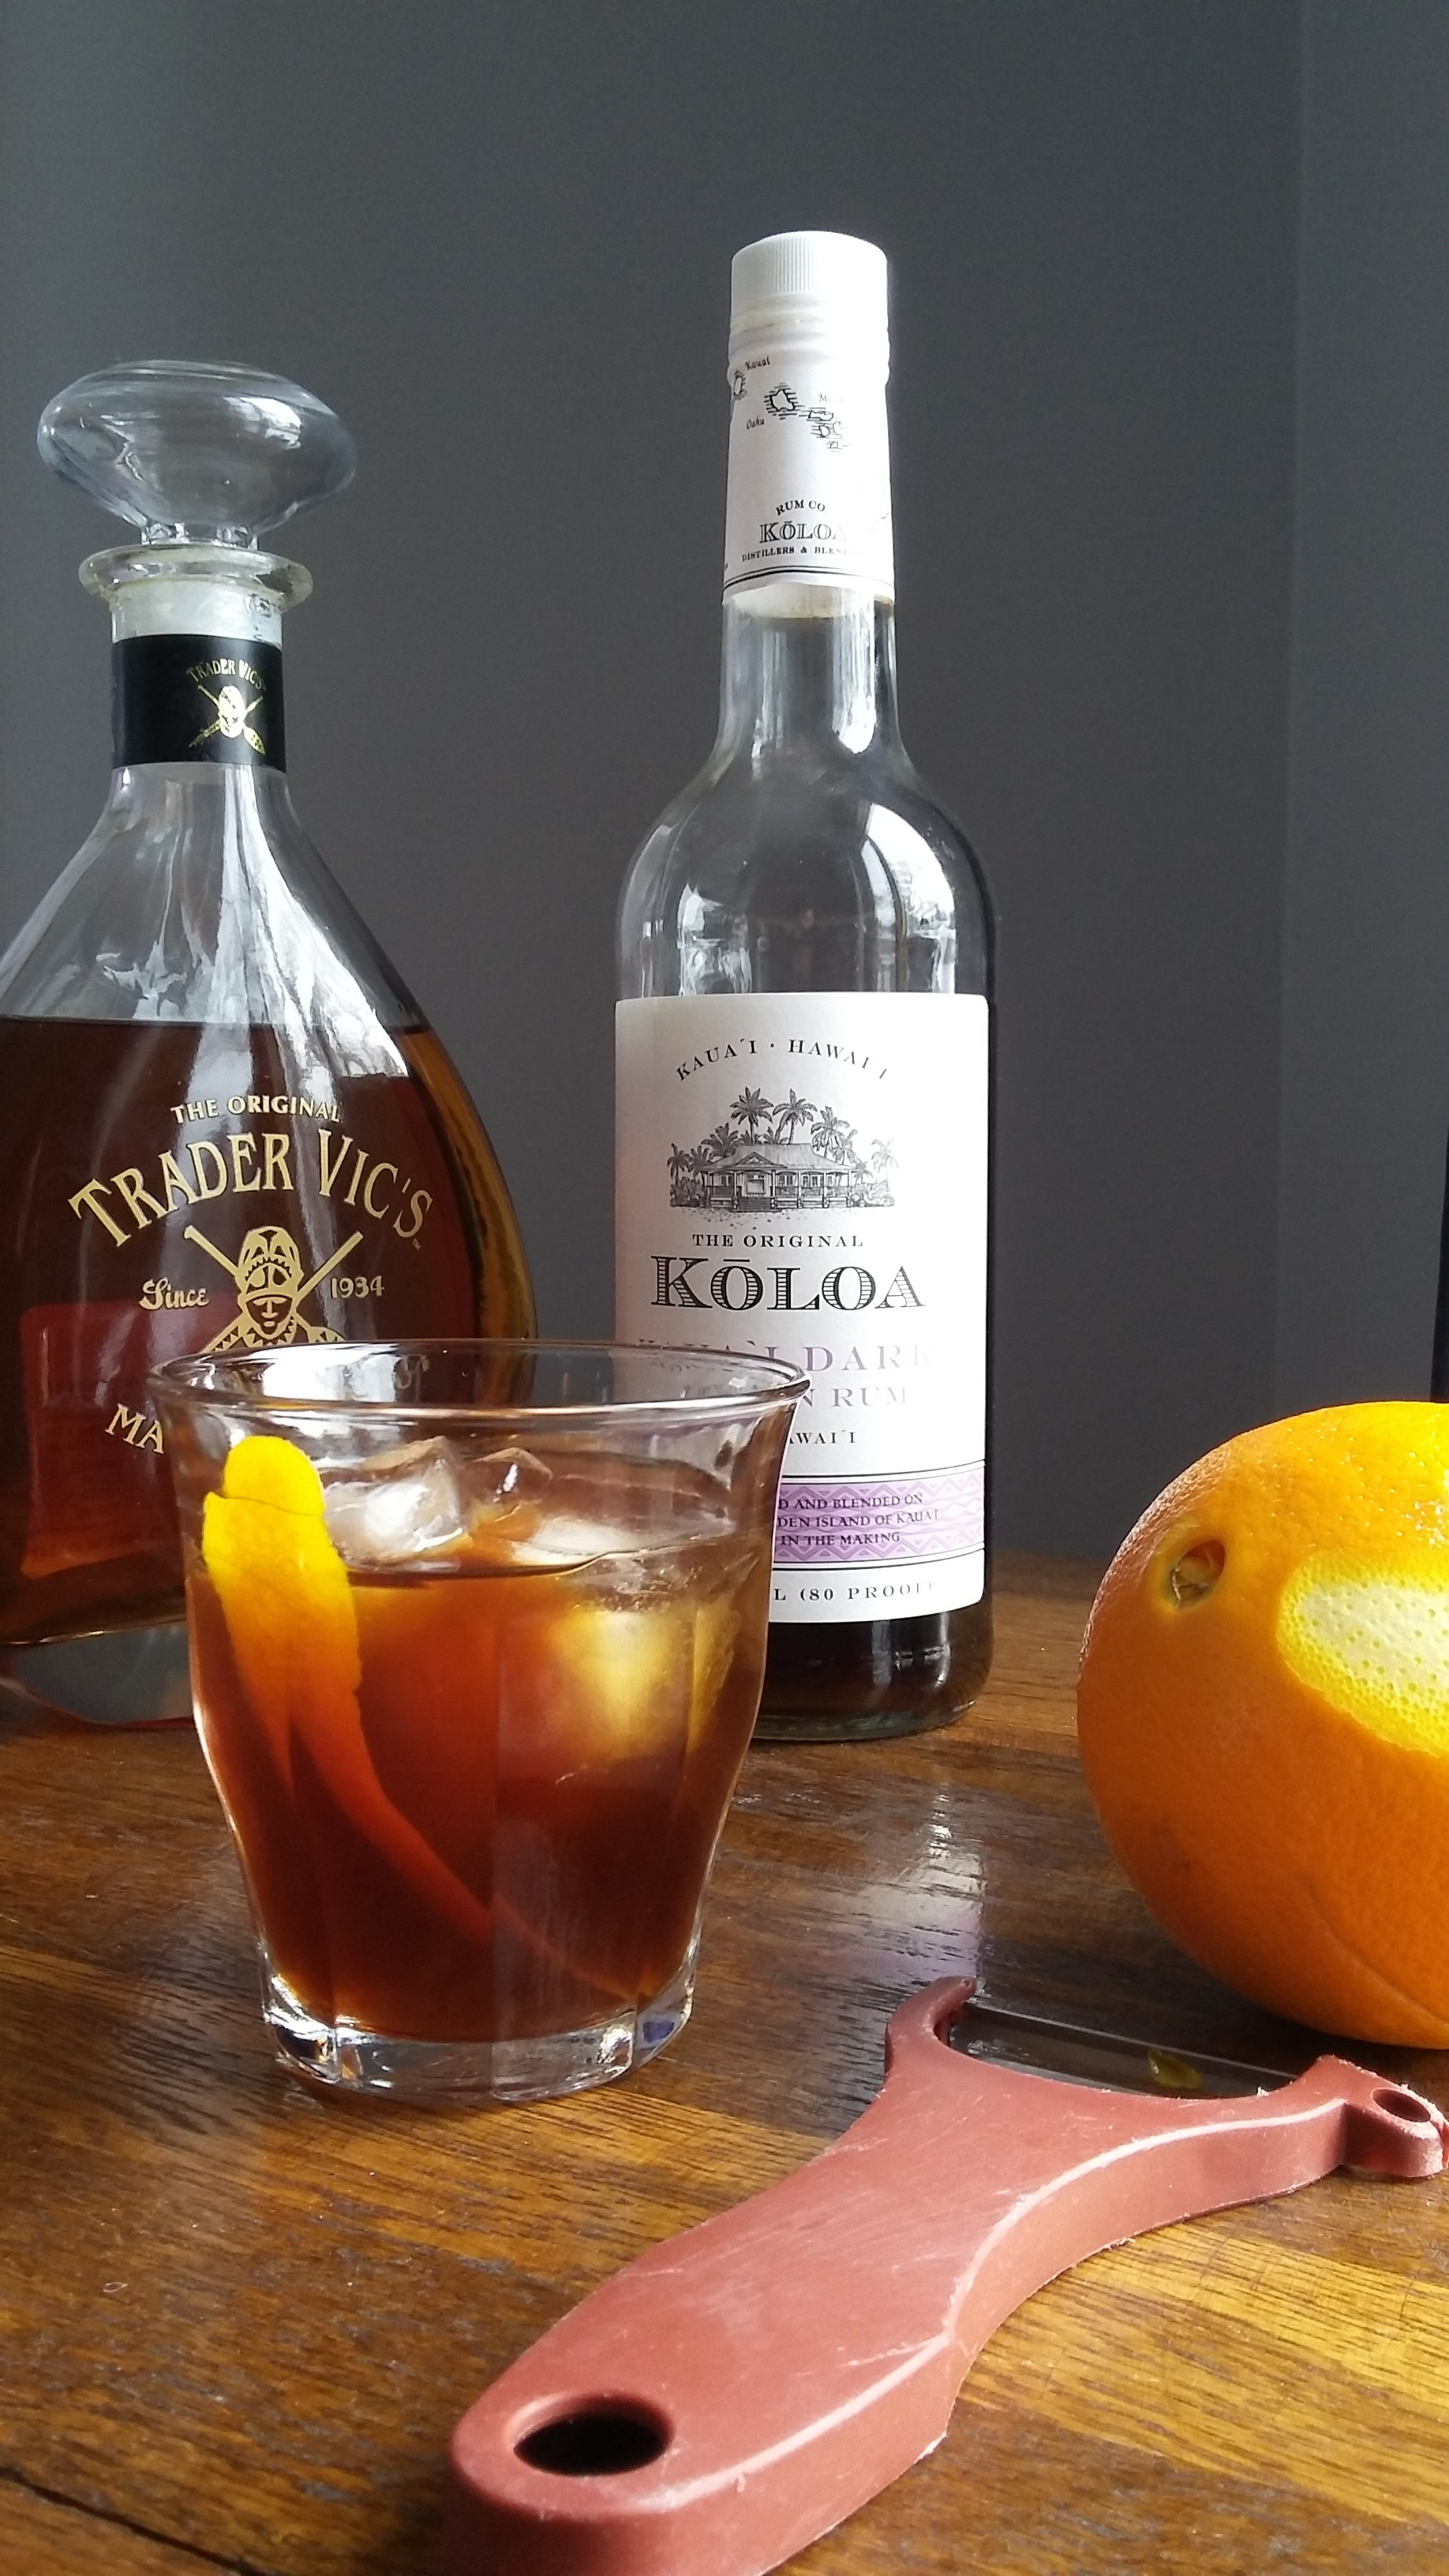 A Kona Breeze cocktail, with Koloa dark rum and Trader Vic's macadamia nut liqueur.